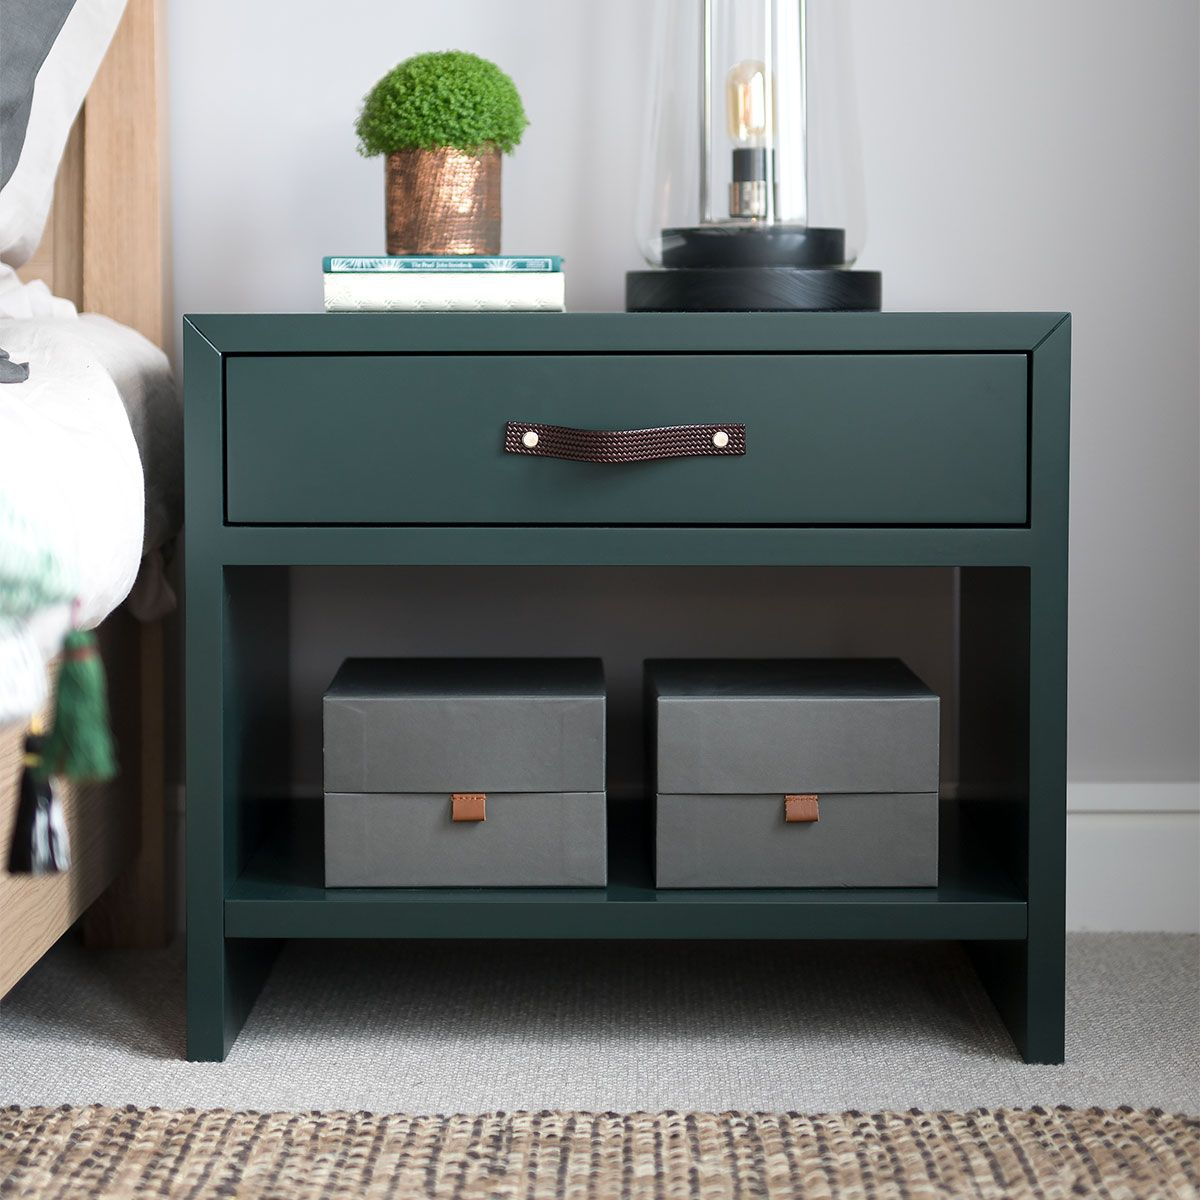 Wide Drawer Bedside Table Th2studio The Latest Addition To Our Bedside Collection The Wide Green Bedside Table Leather Bedside Table Bedroom Bedside Table